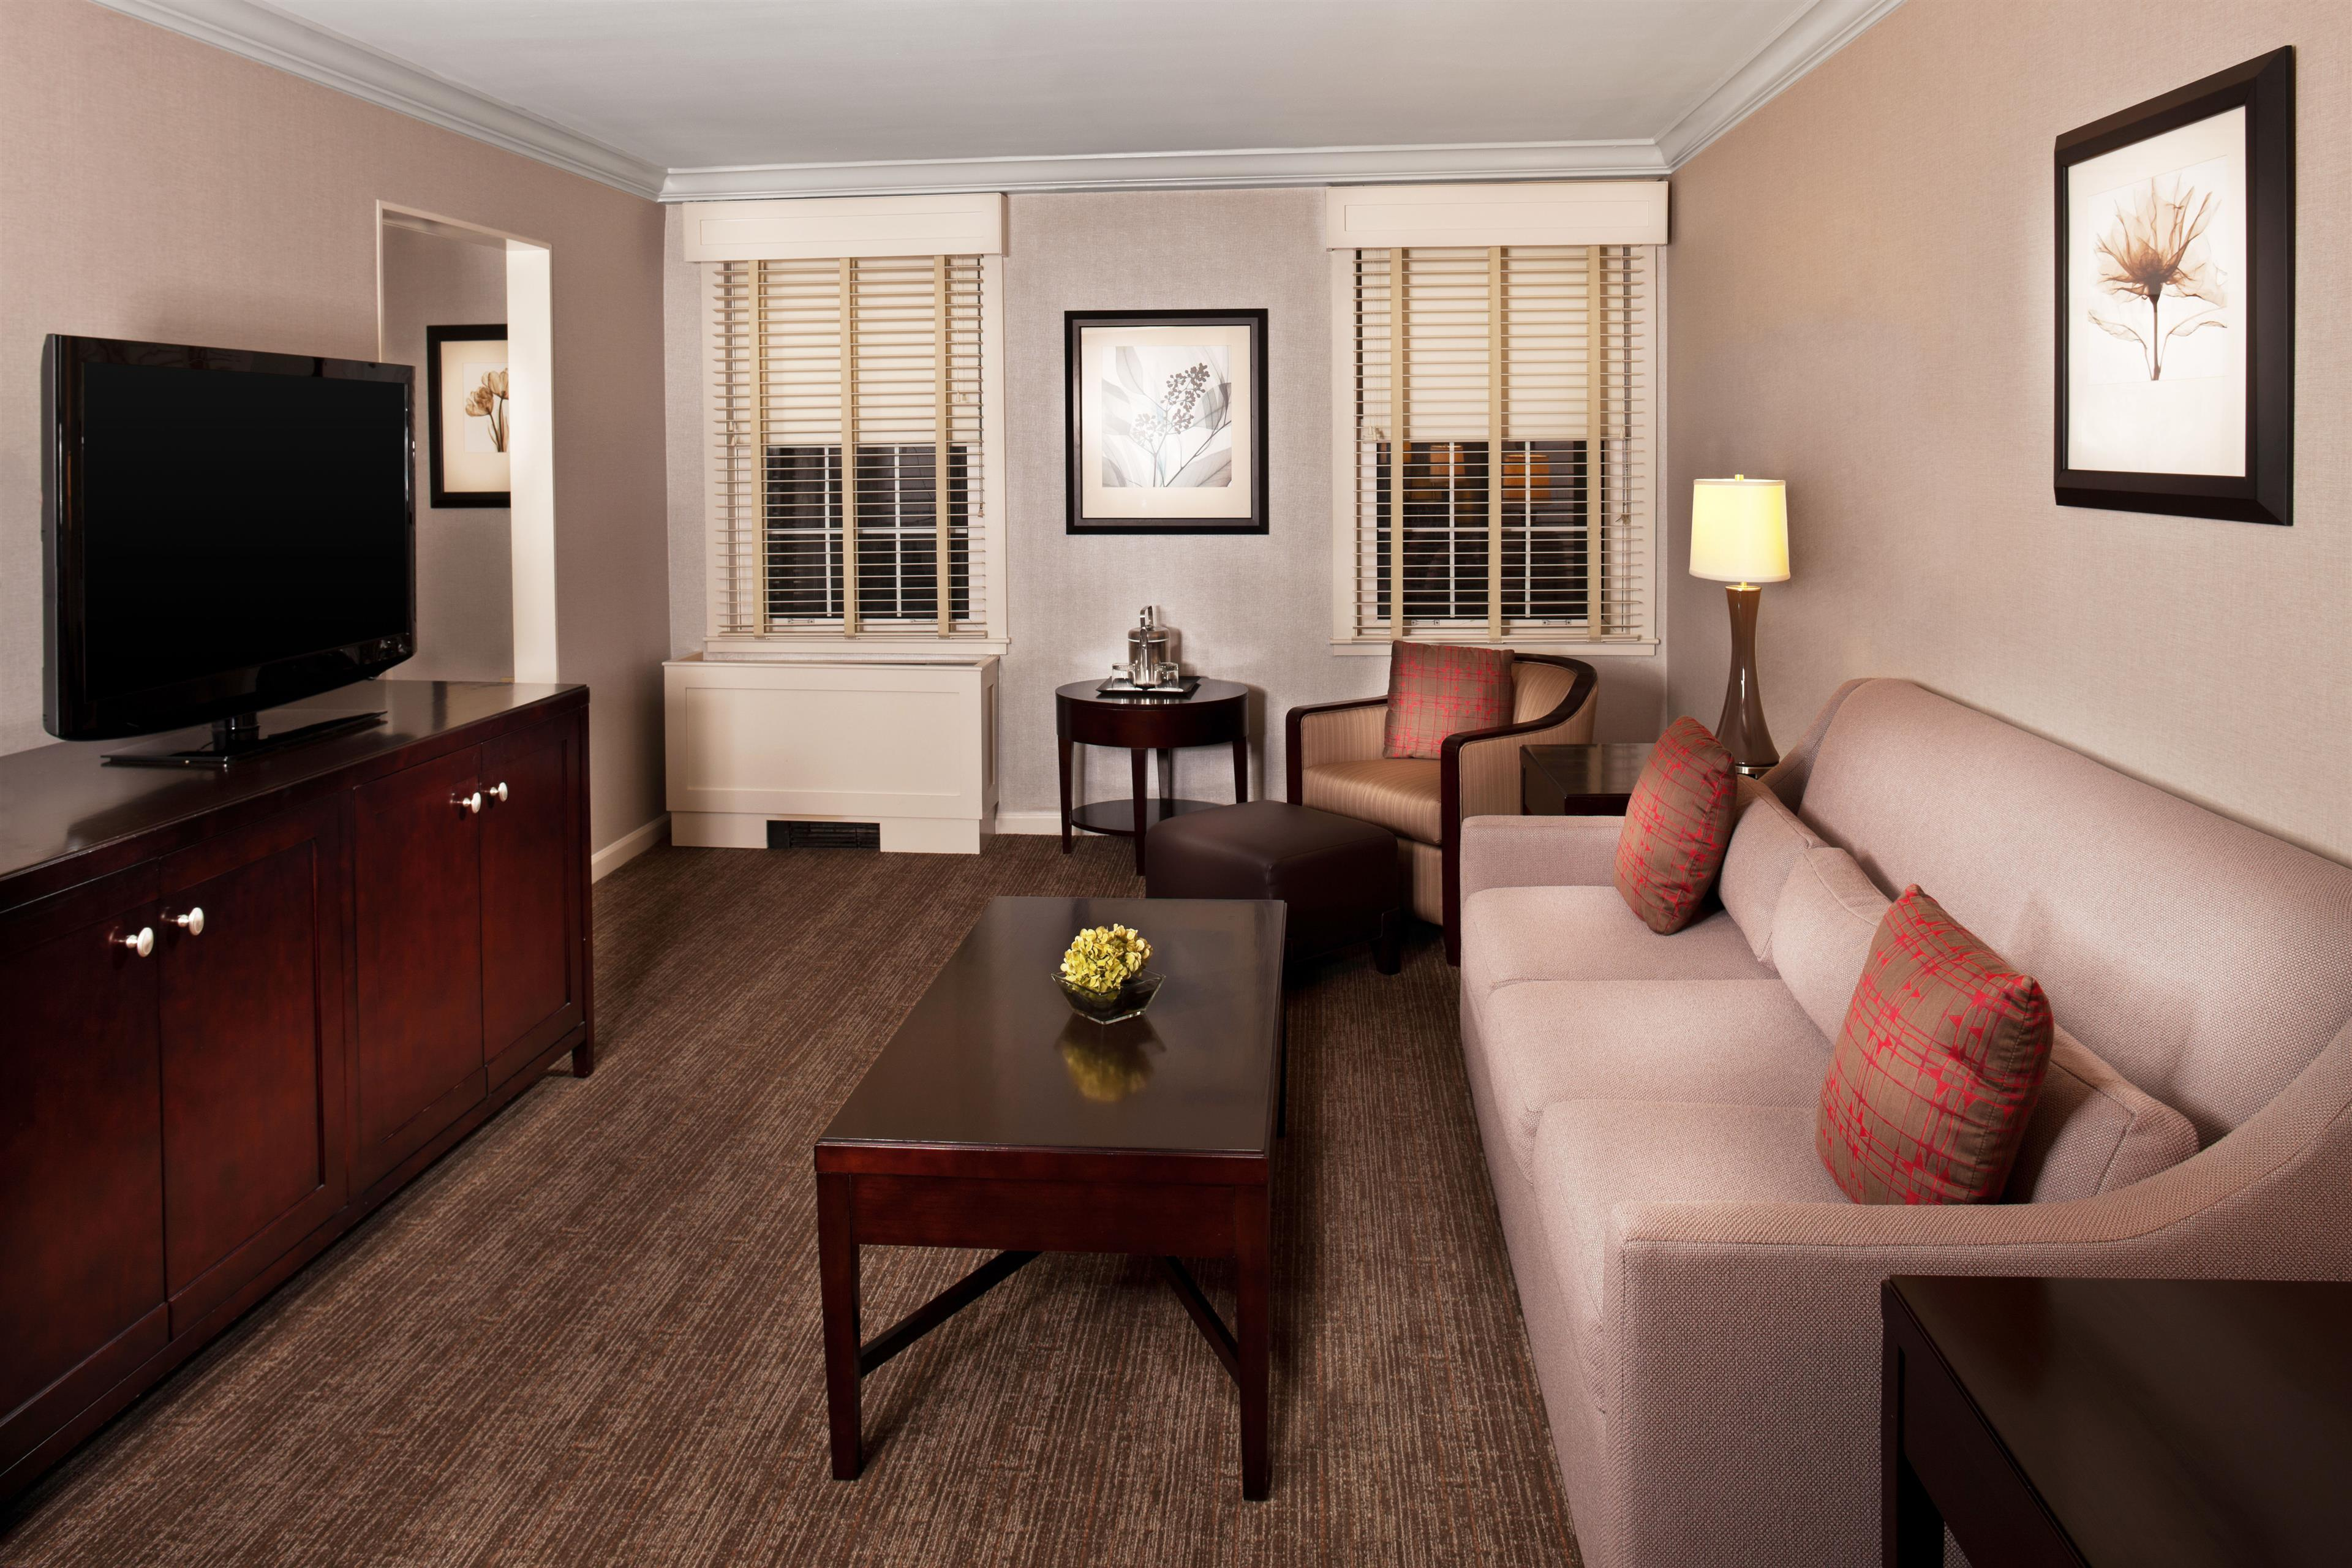 Westin Morristown Room Service